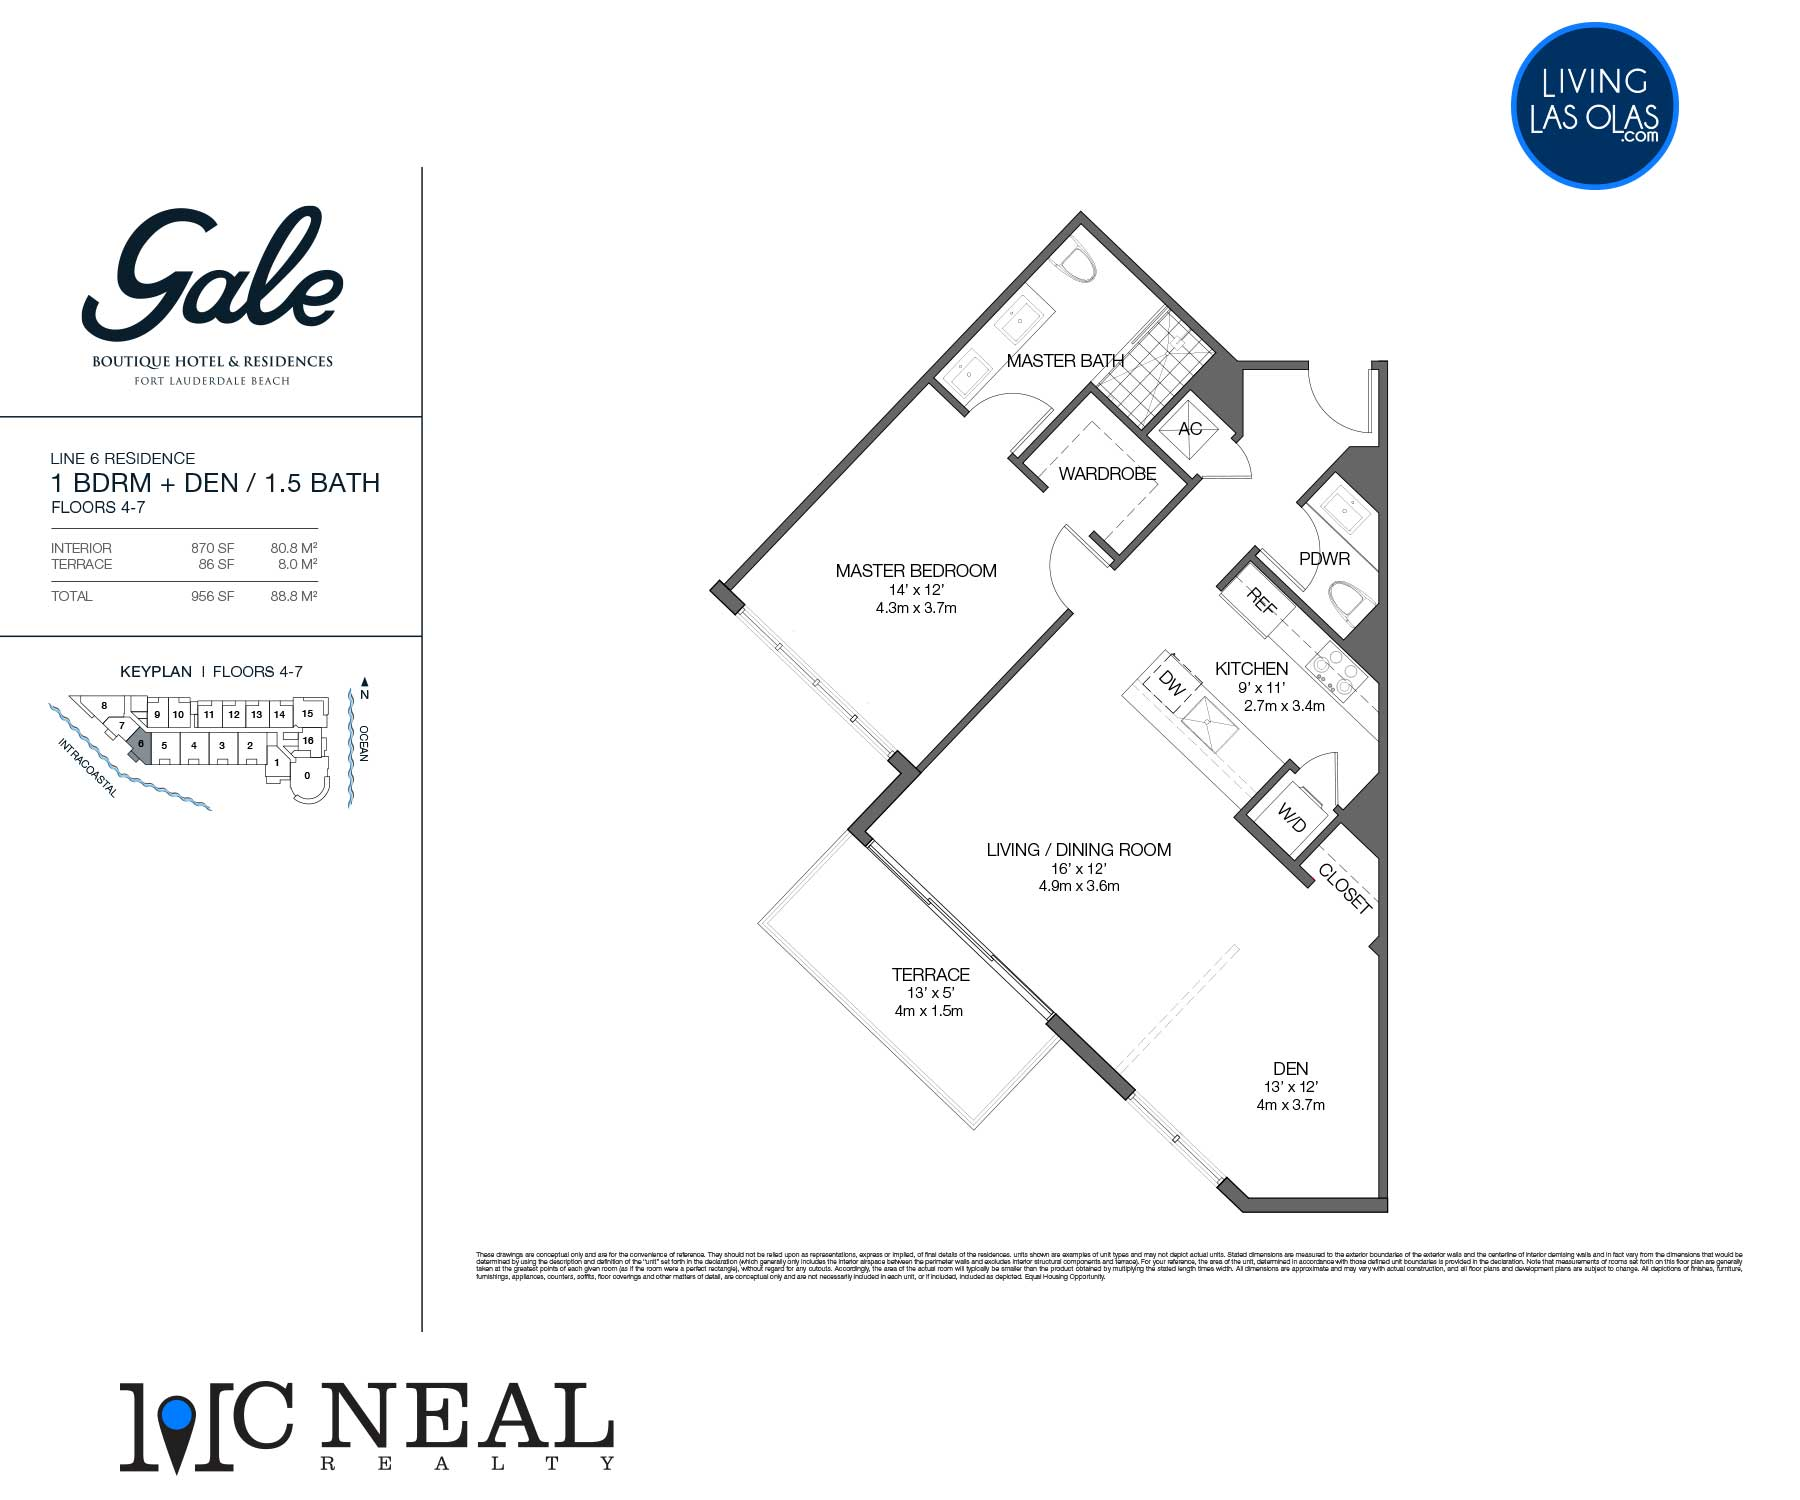 Tiffany House Condos Floor Plans Line 6